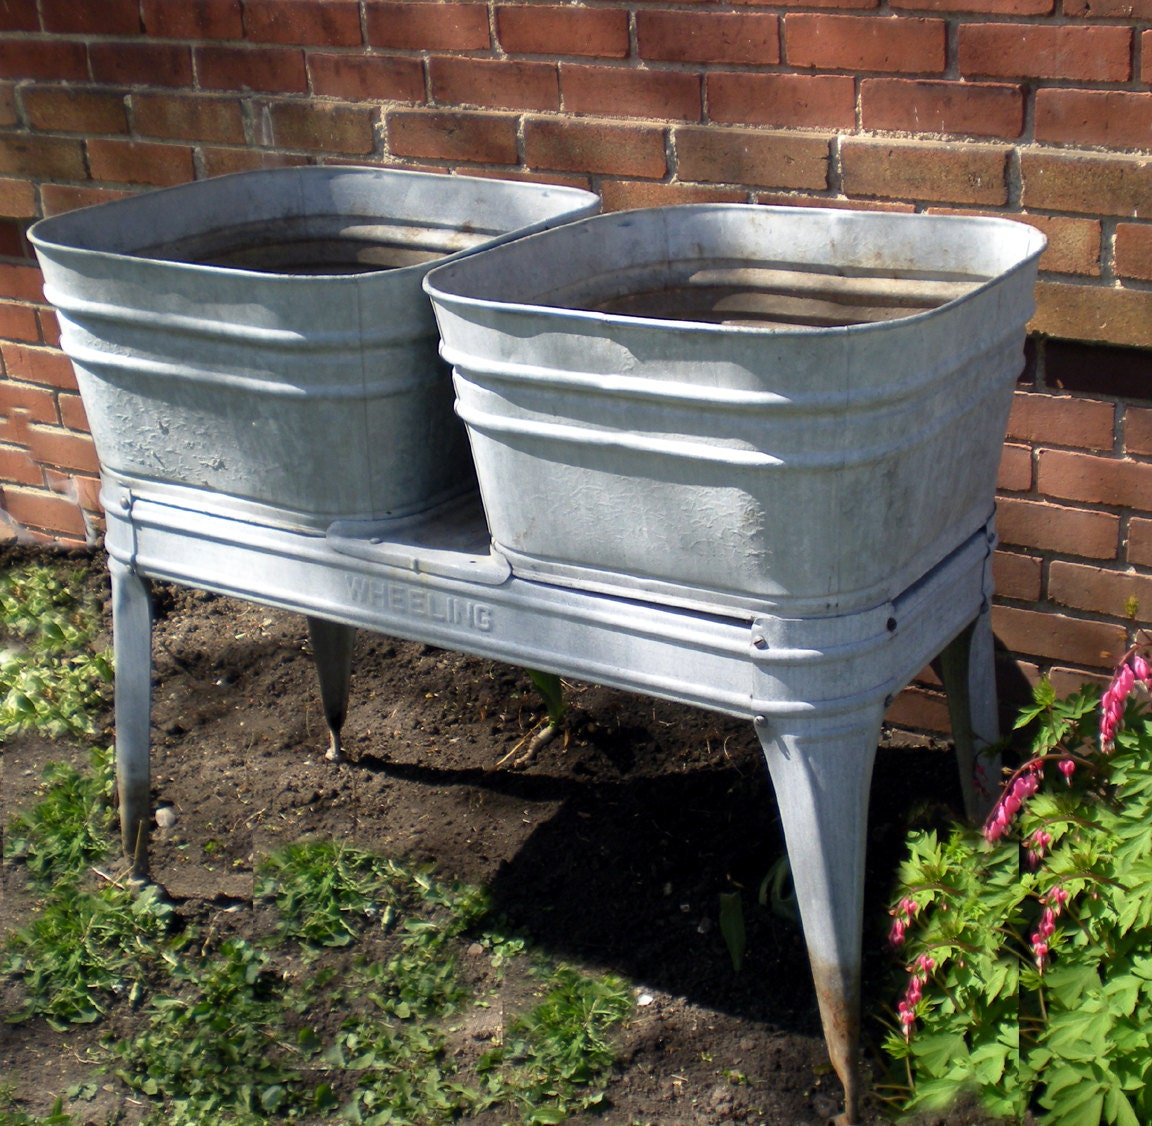 Rare Wheeling Galvanized Wash tubs double two Garden decor